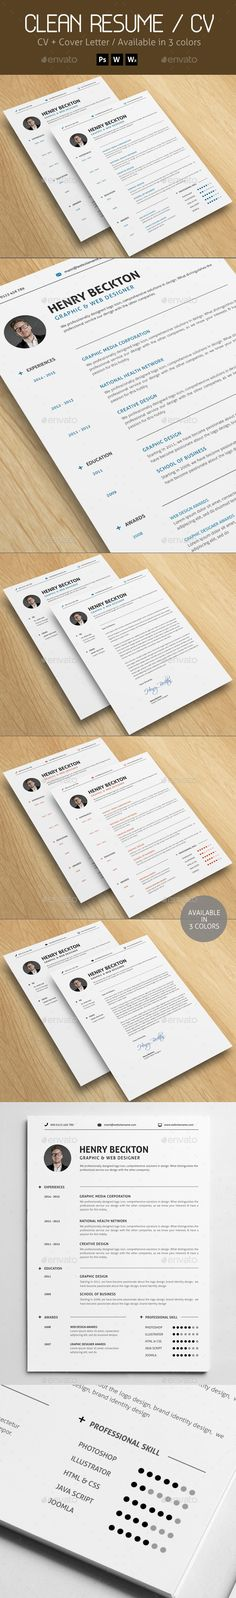 Glory Resume See best ideas about Perfect resume and Cv template - styles of resumes